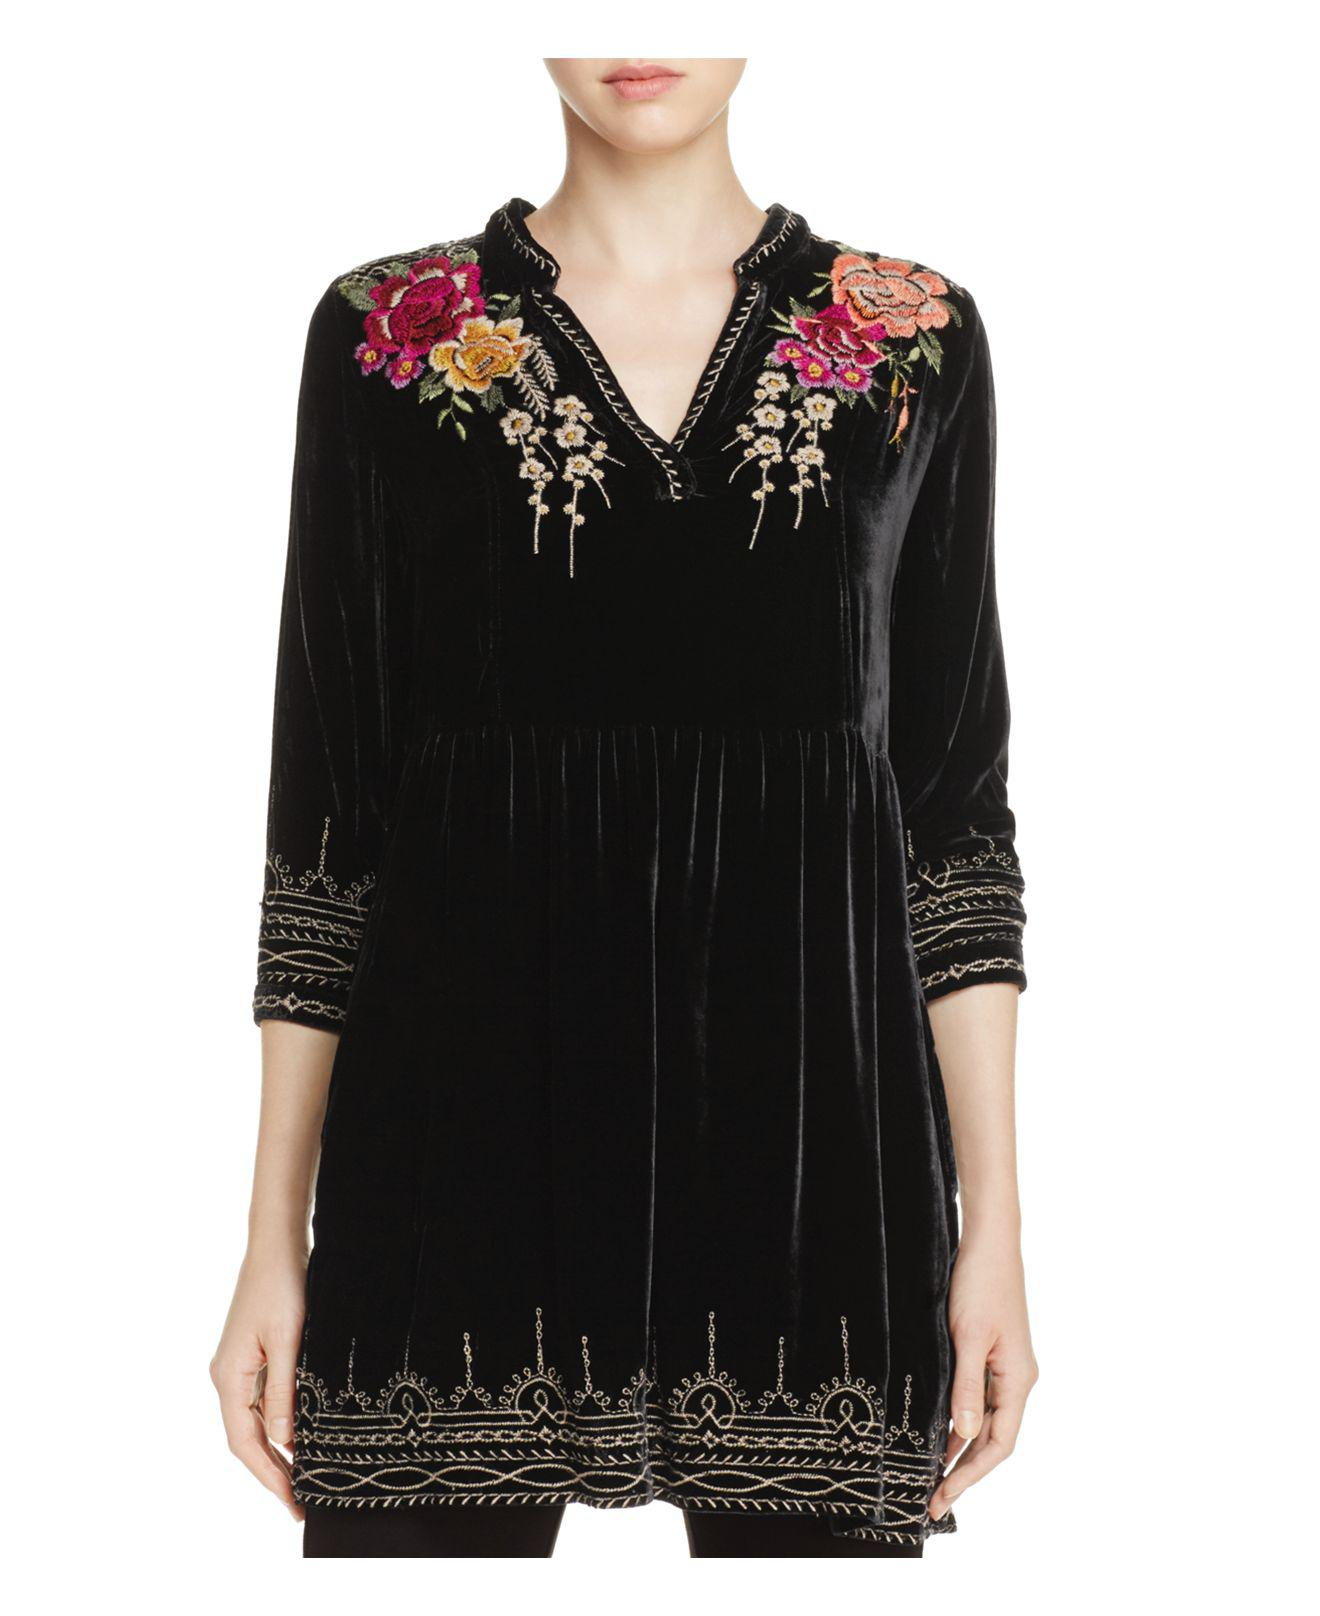 Lyst - Johnny Was Embroidered Floral Velvet Tunic Top in Black